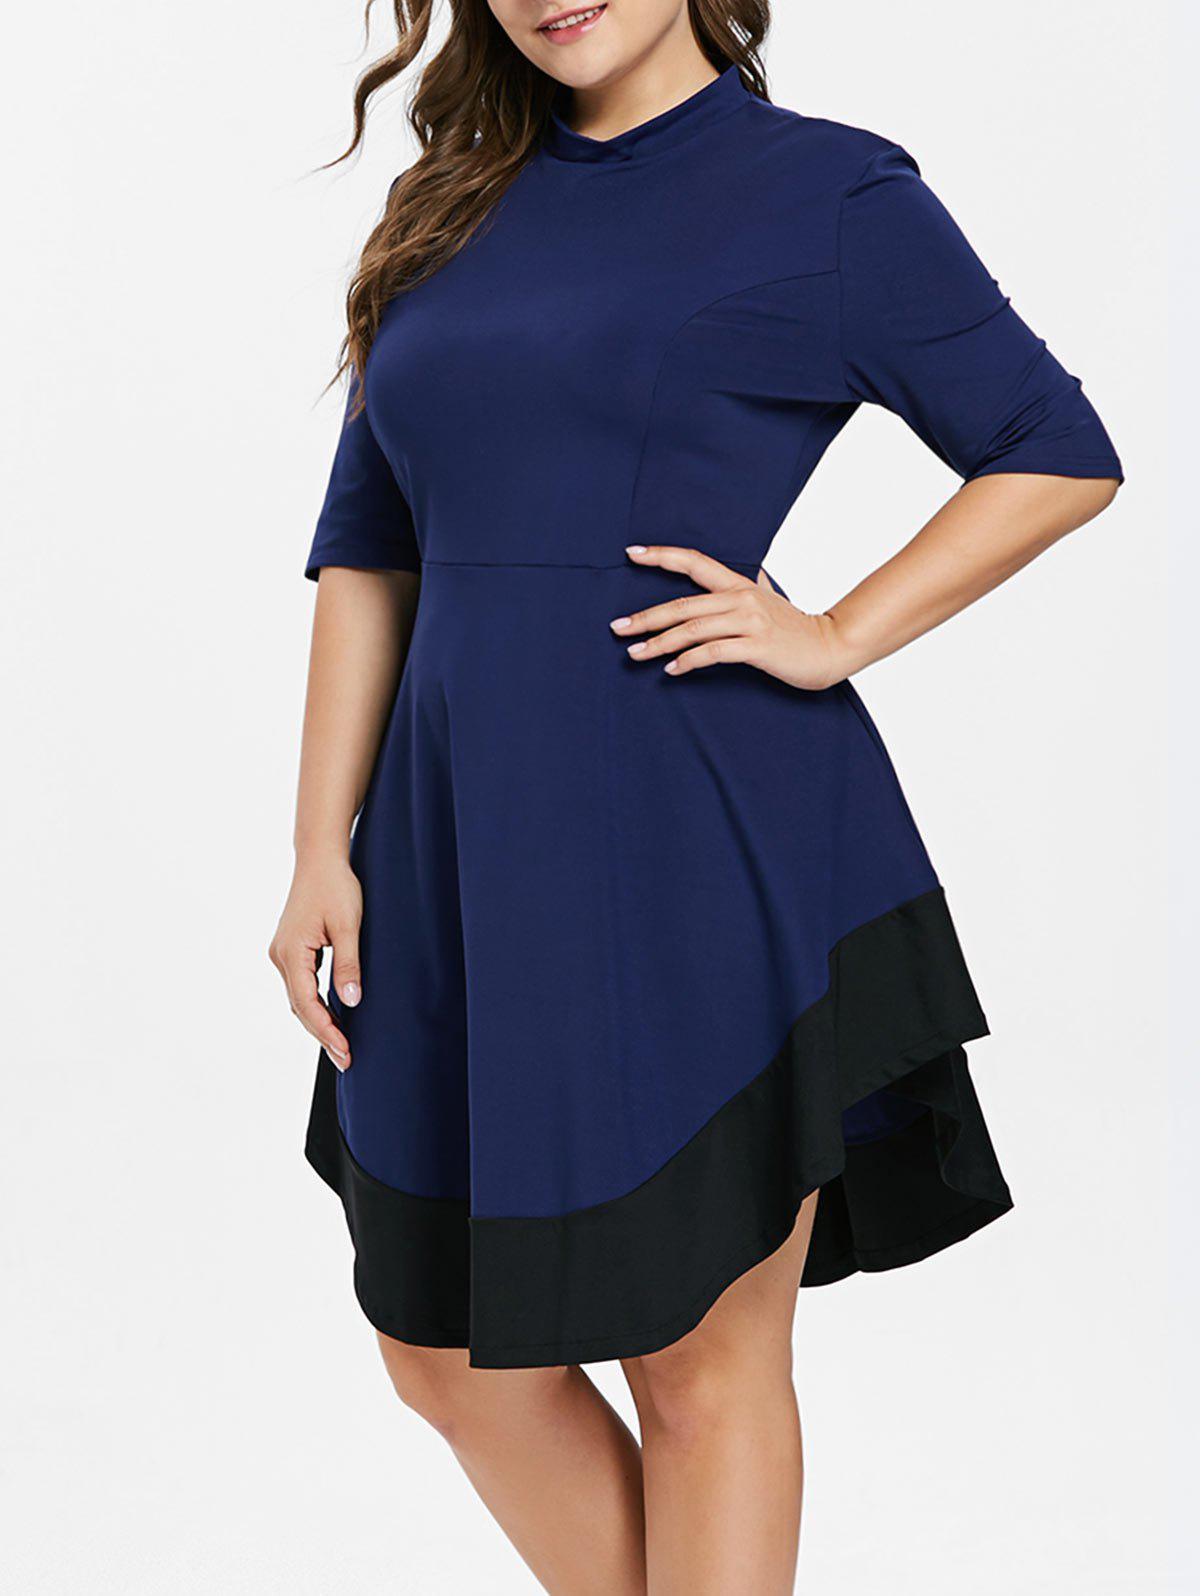 45% OFF] Plus Size Two Tone Swing Dress | Rosegal